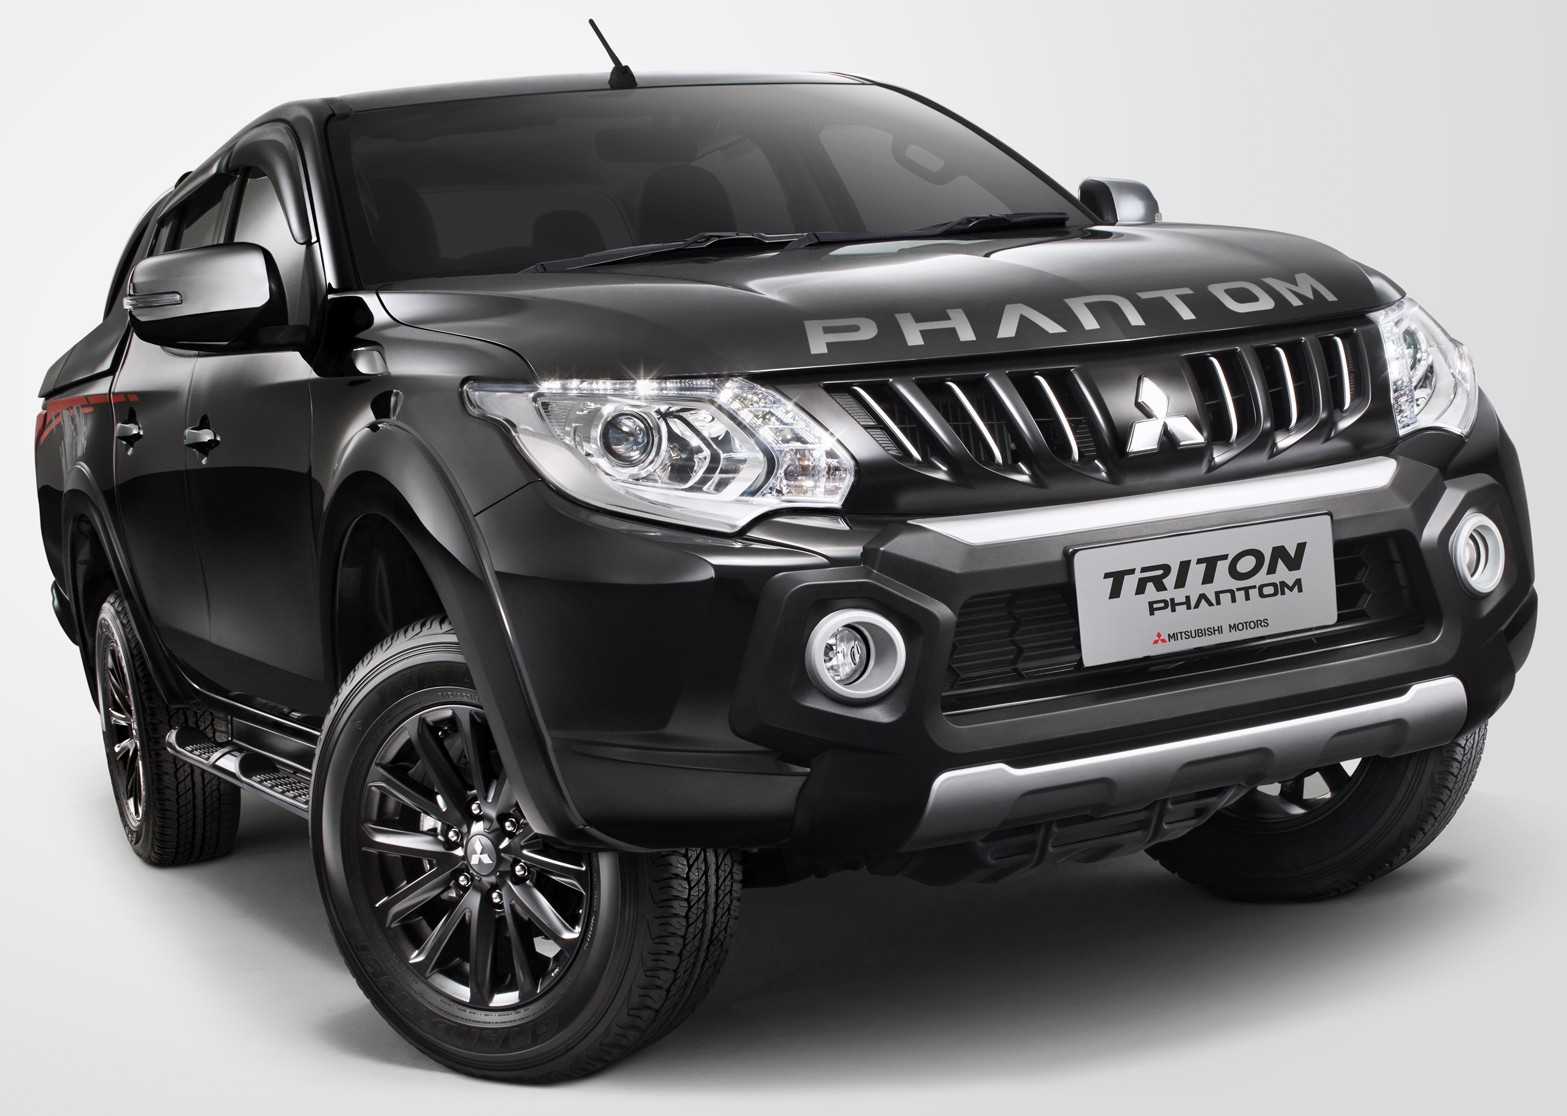 mitsubishi triton phantom edition launched in malaysia. Black Bedroom Furniture Sets. Home Design Ideas